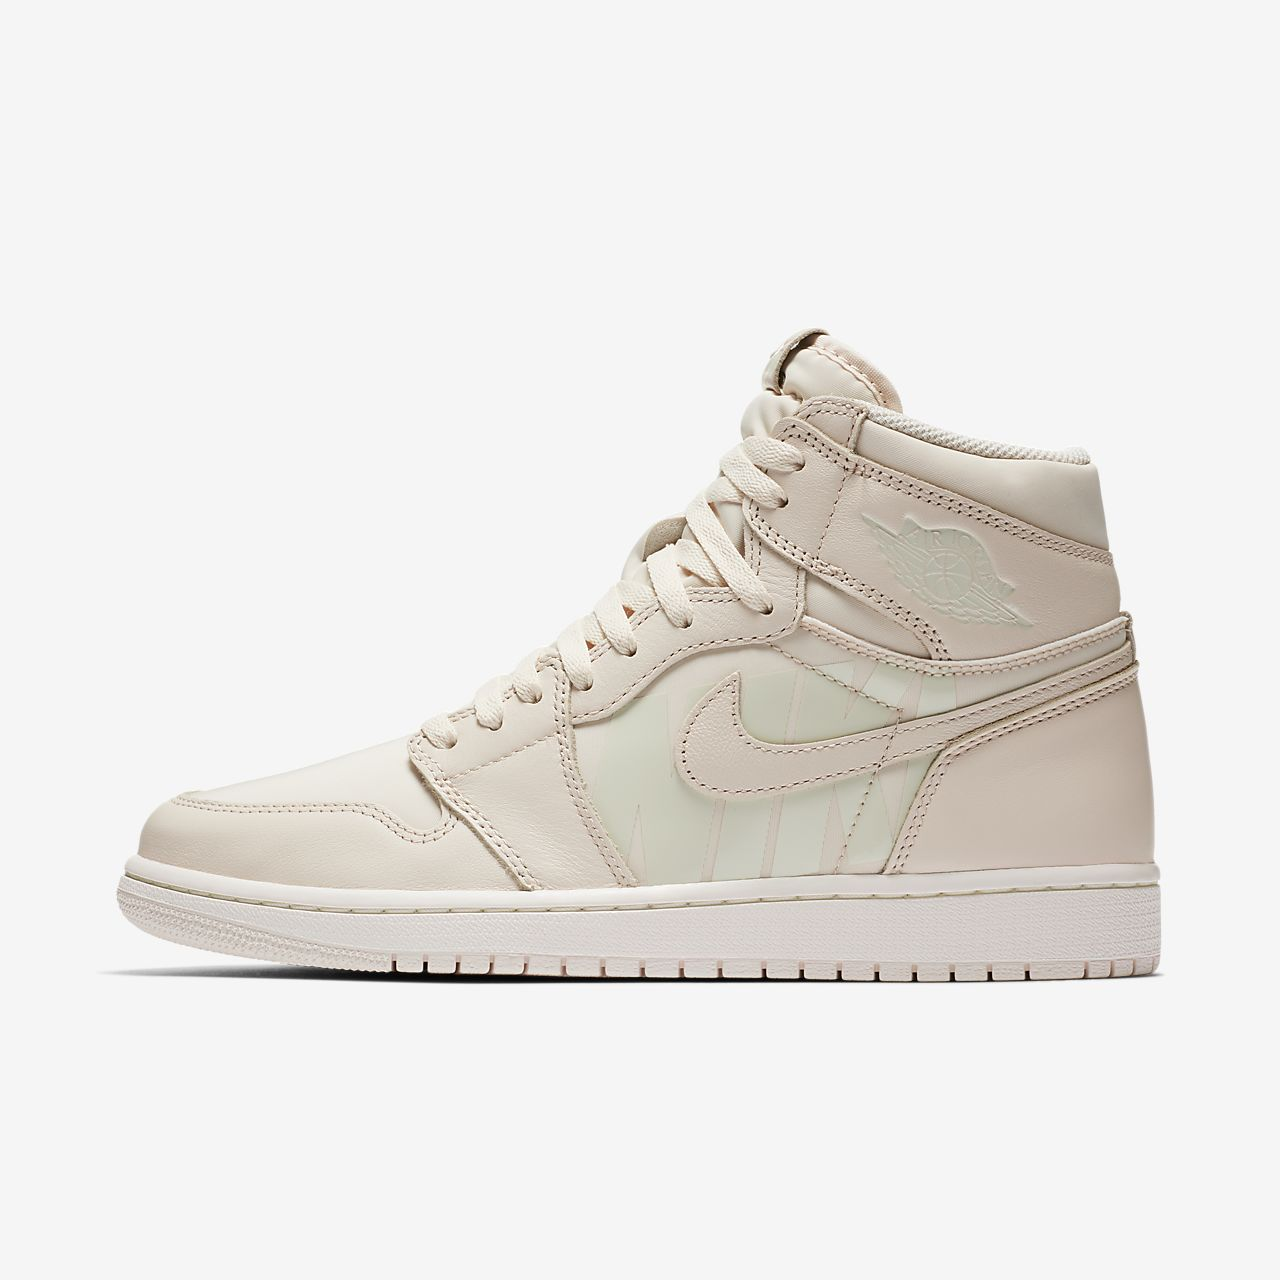 new styles 8e434 00a72 ... Air Jordan 1 Retro High OG Shoe